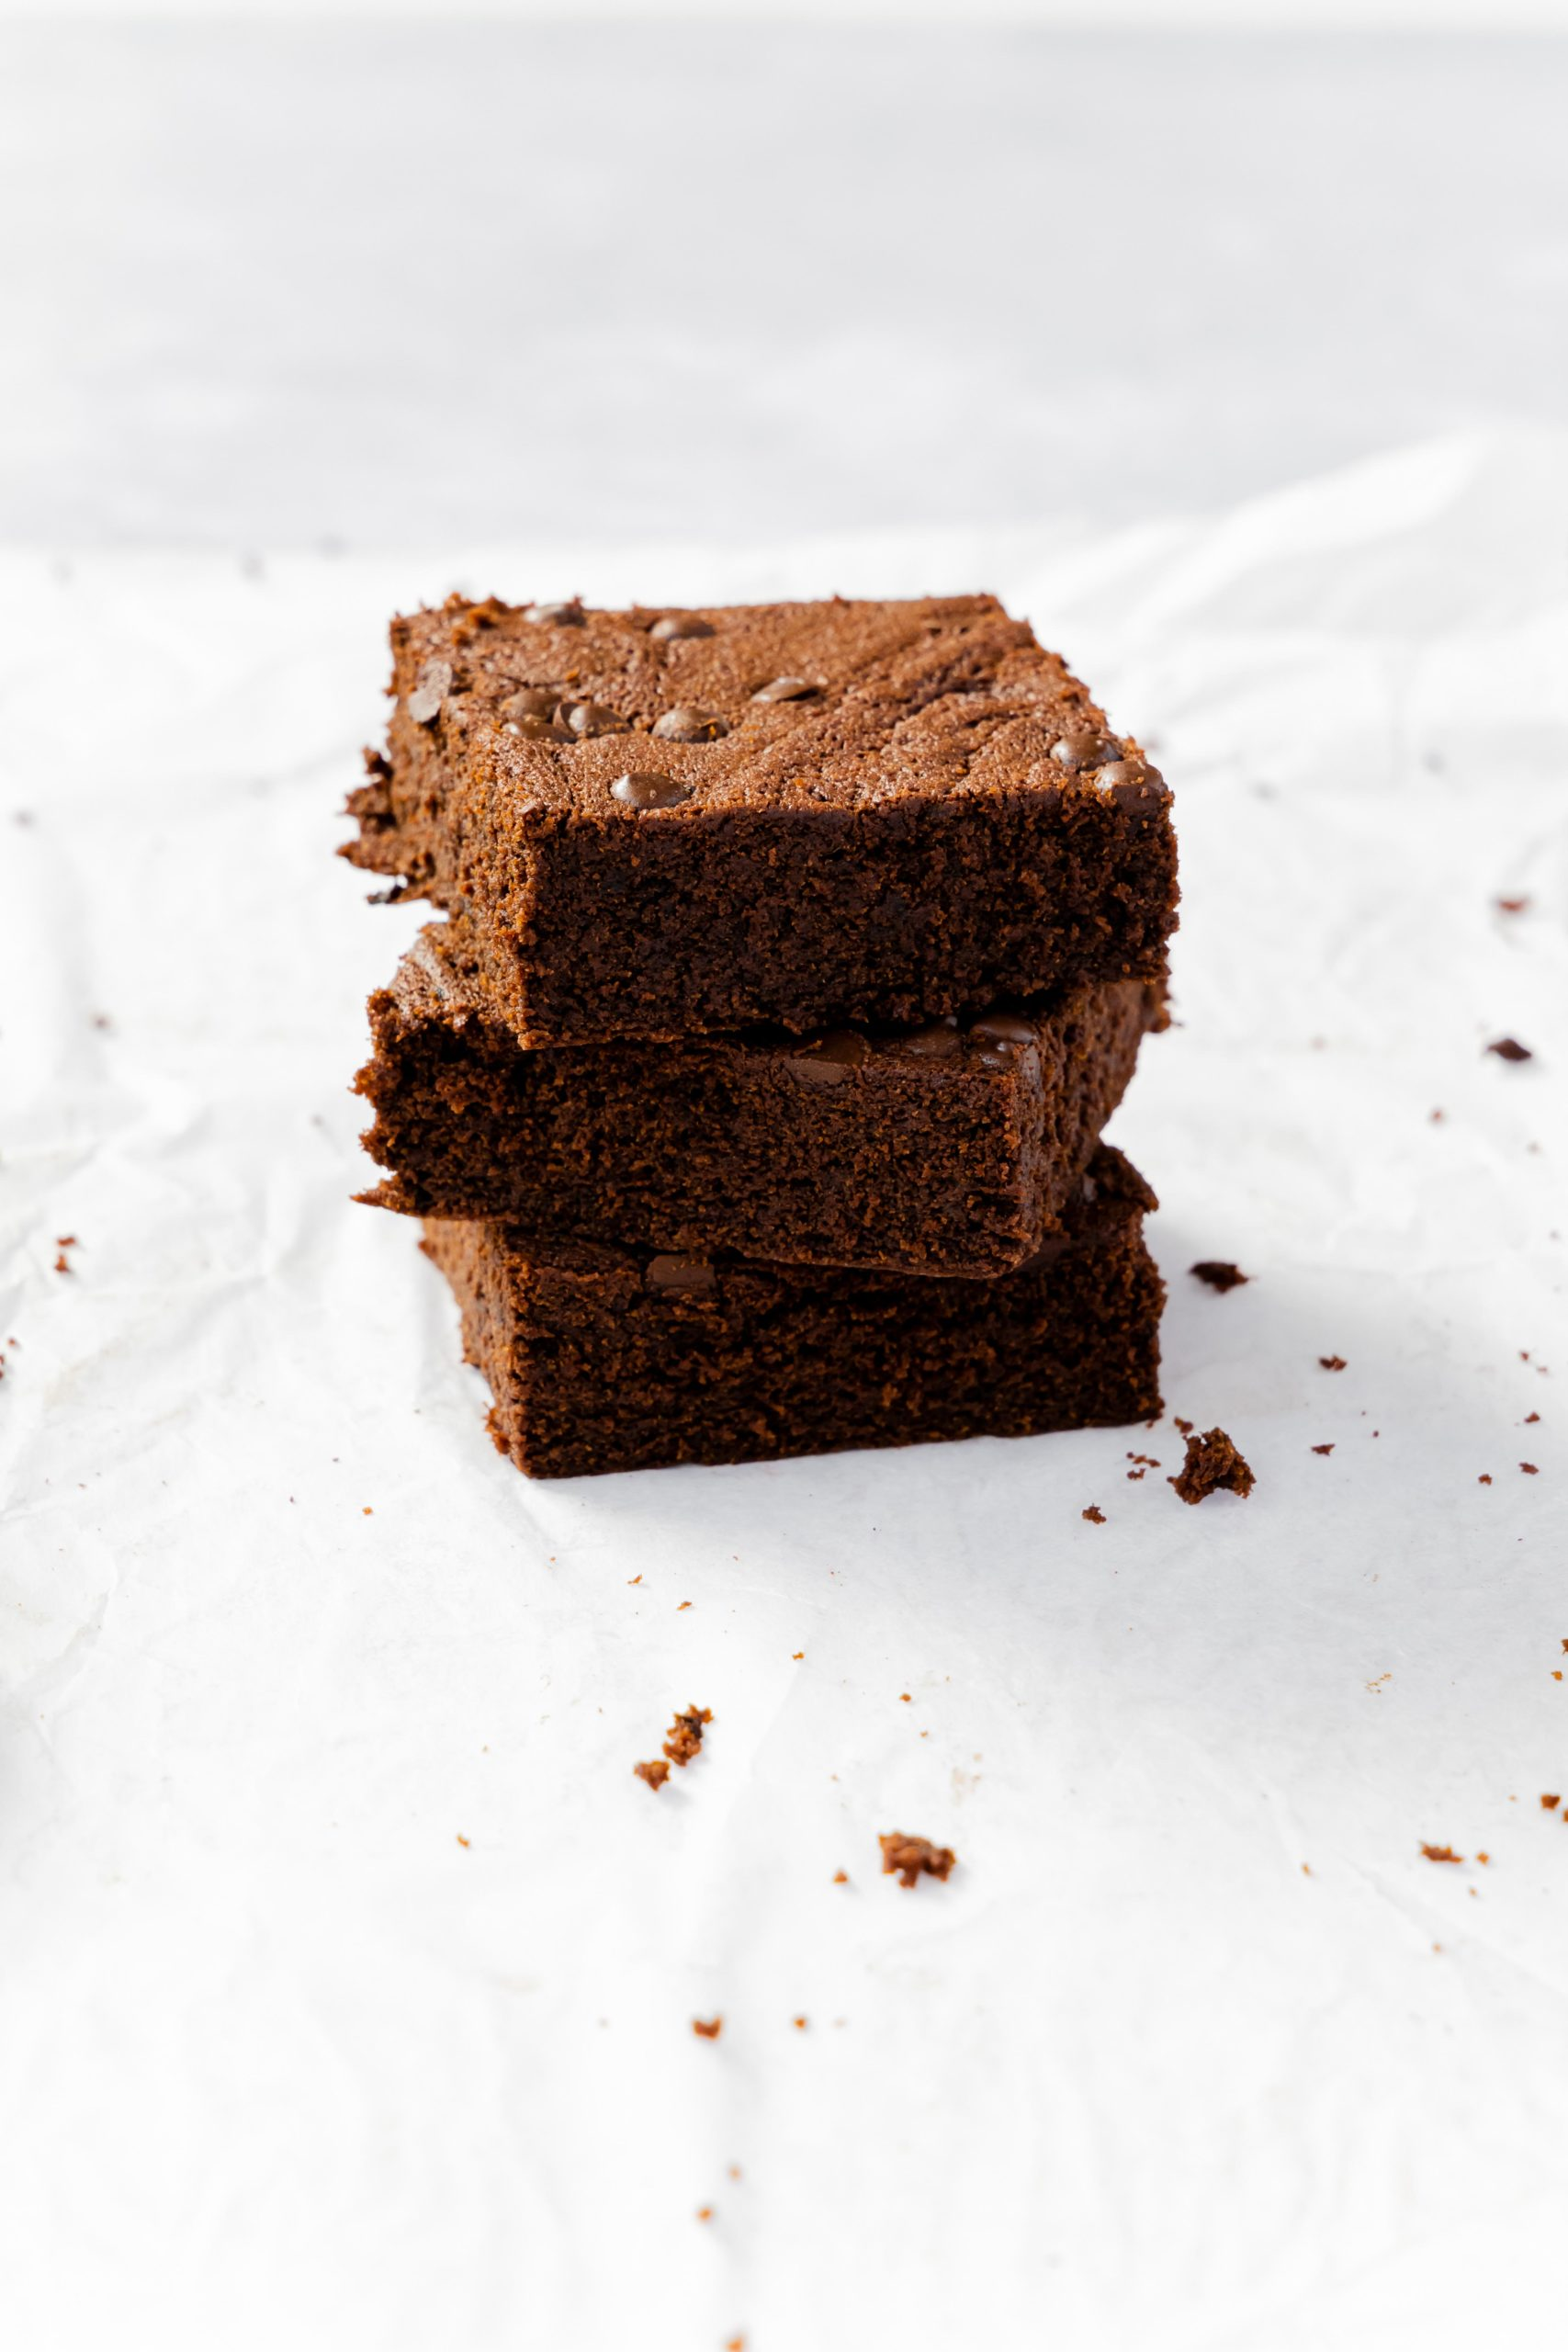 Kaffee Brownies// Coffee Brownies by https://babyrockmyday.com/kaffee-brownies/